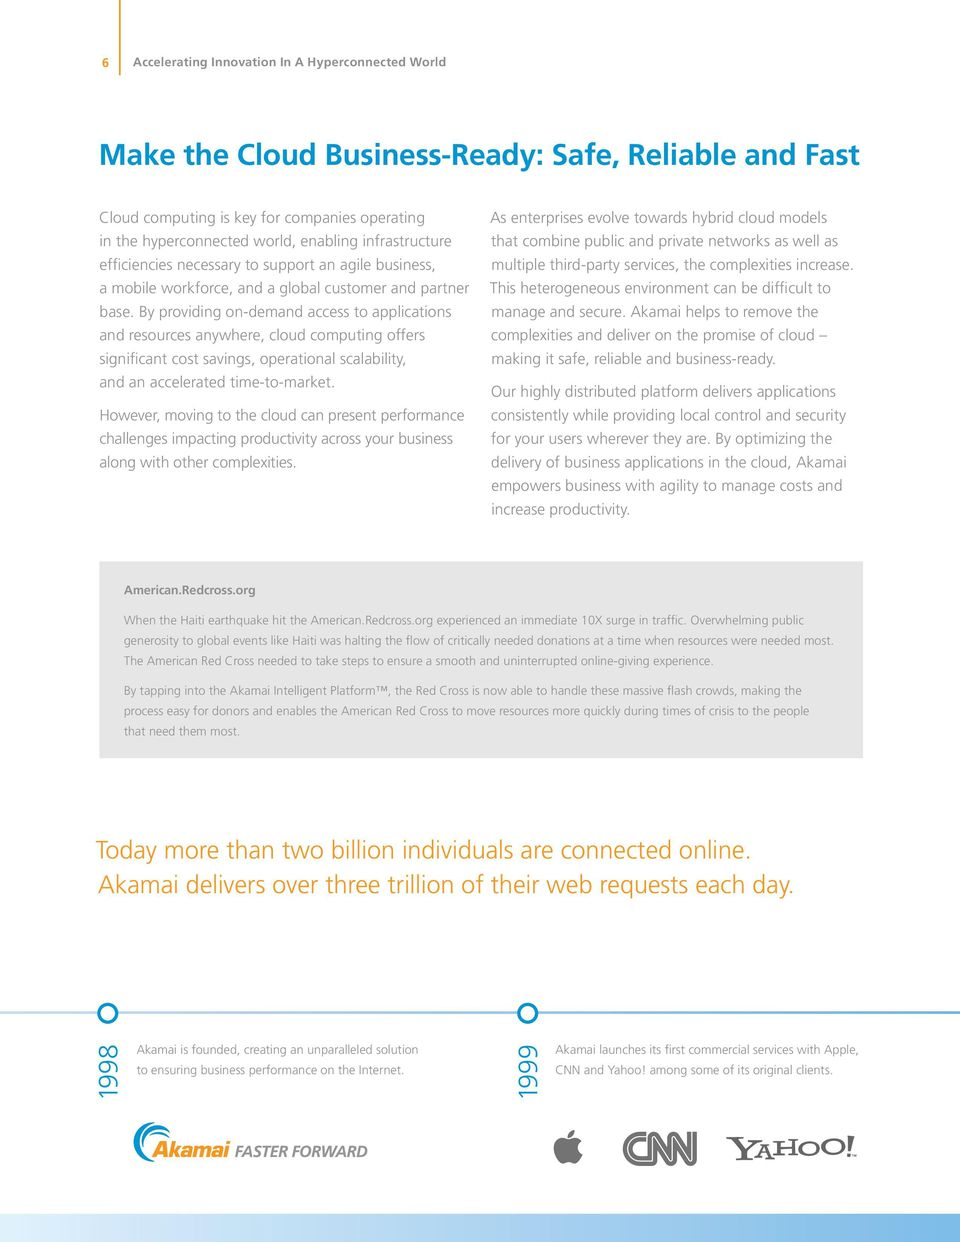 By providing on-demand access to applications and resources anywhere, cloud computing offers significant cost savings, operational scalability, and an accelerated time-to-market.